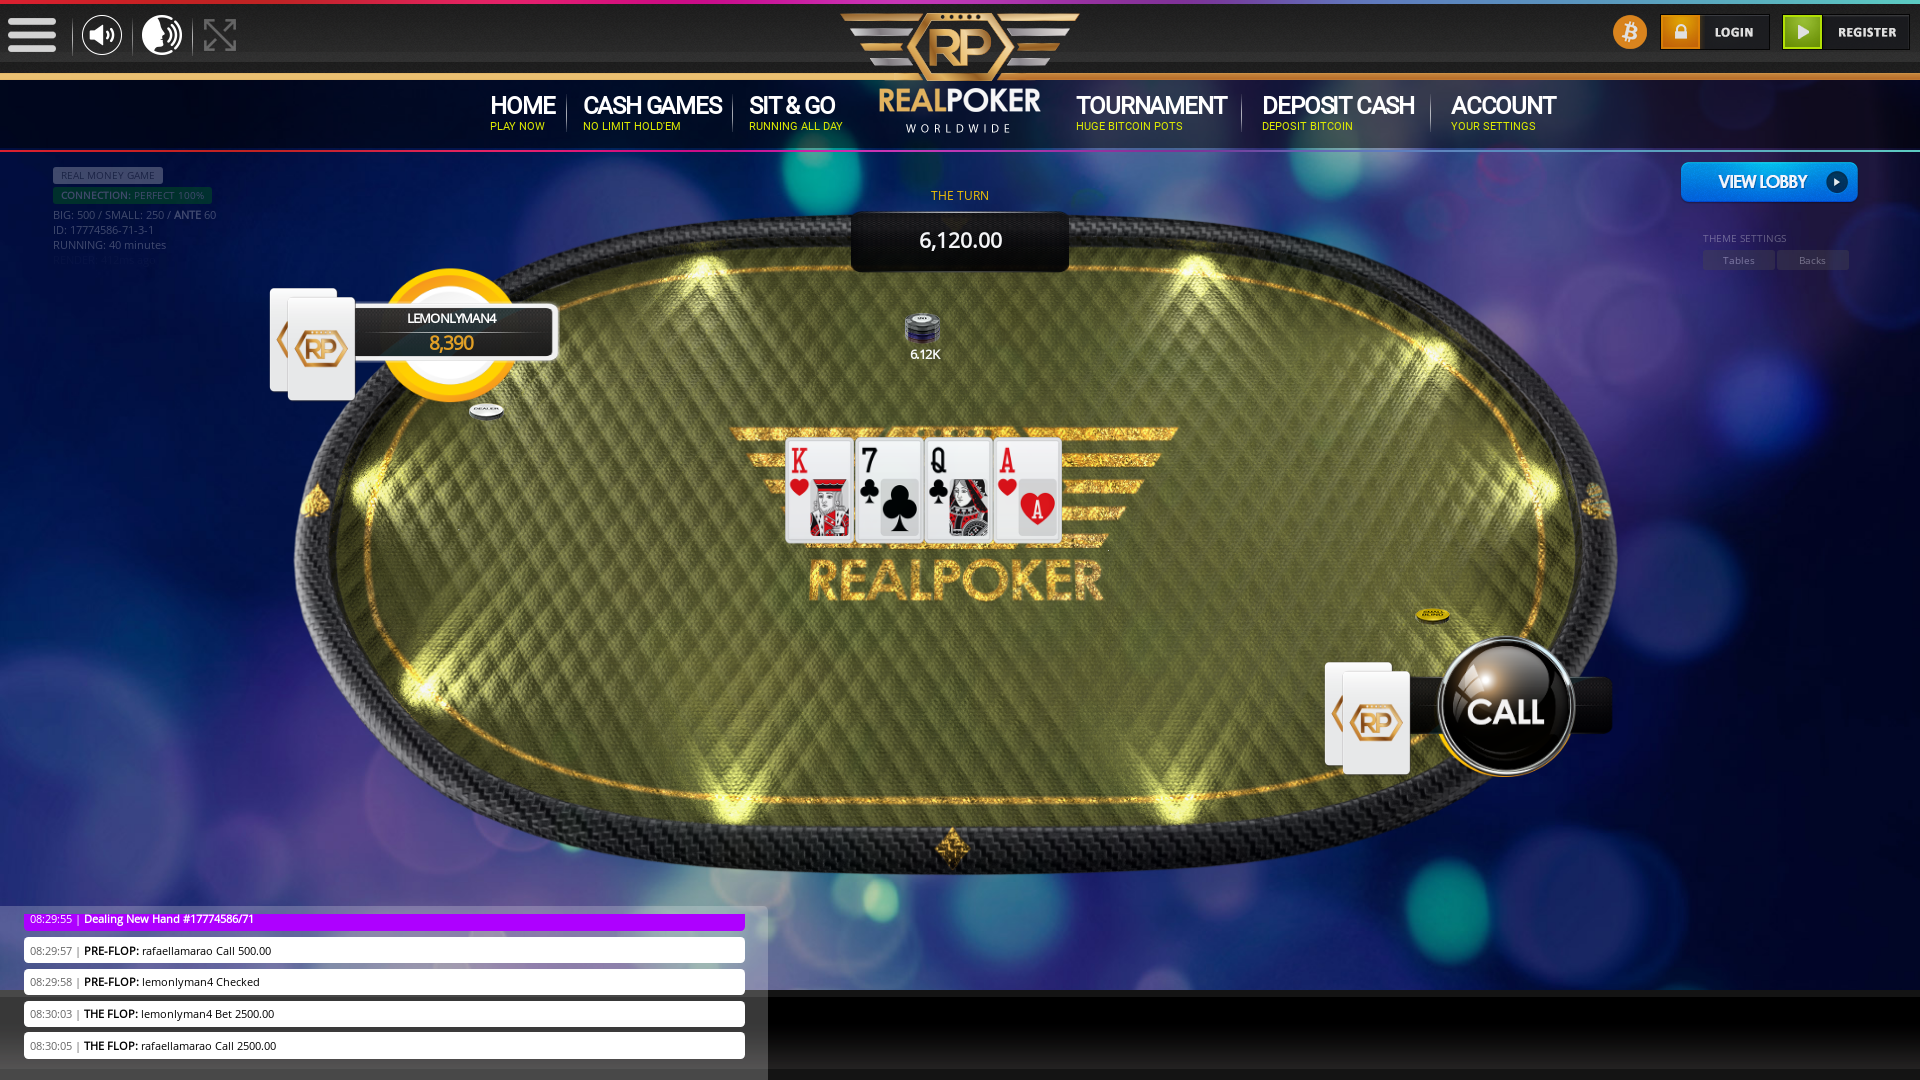 online poker on a 10 player table in the 40th minute match up